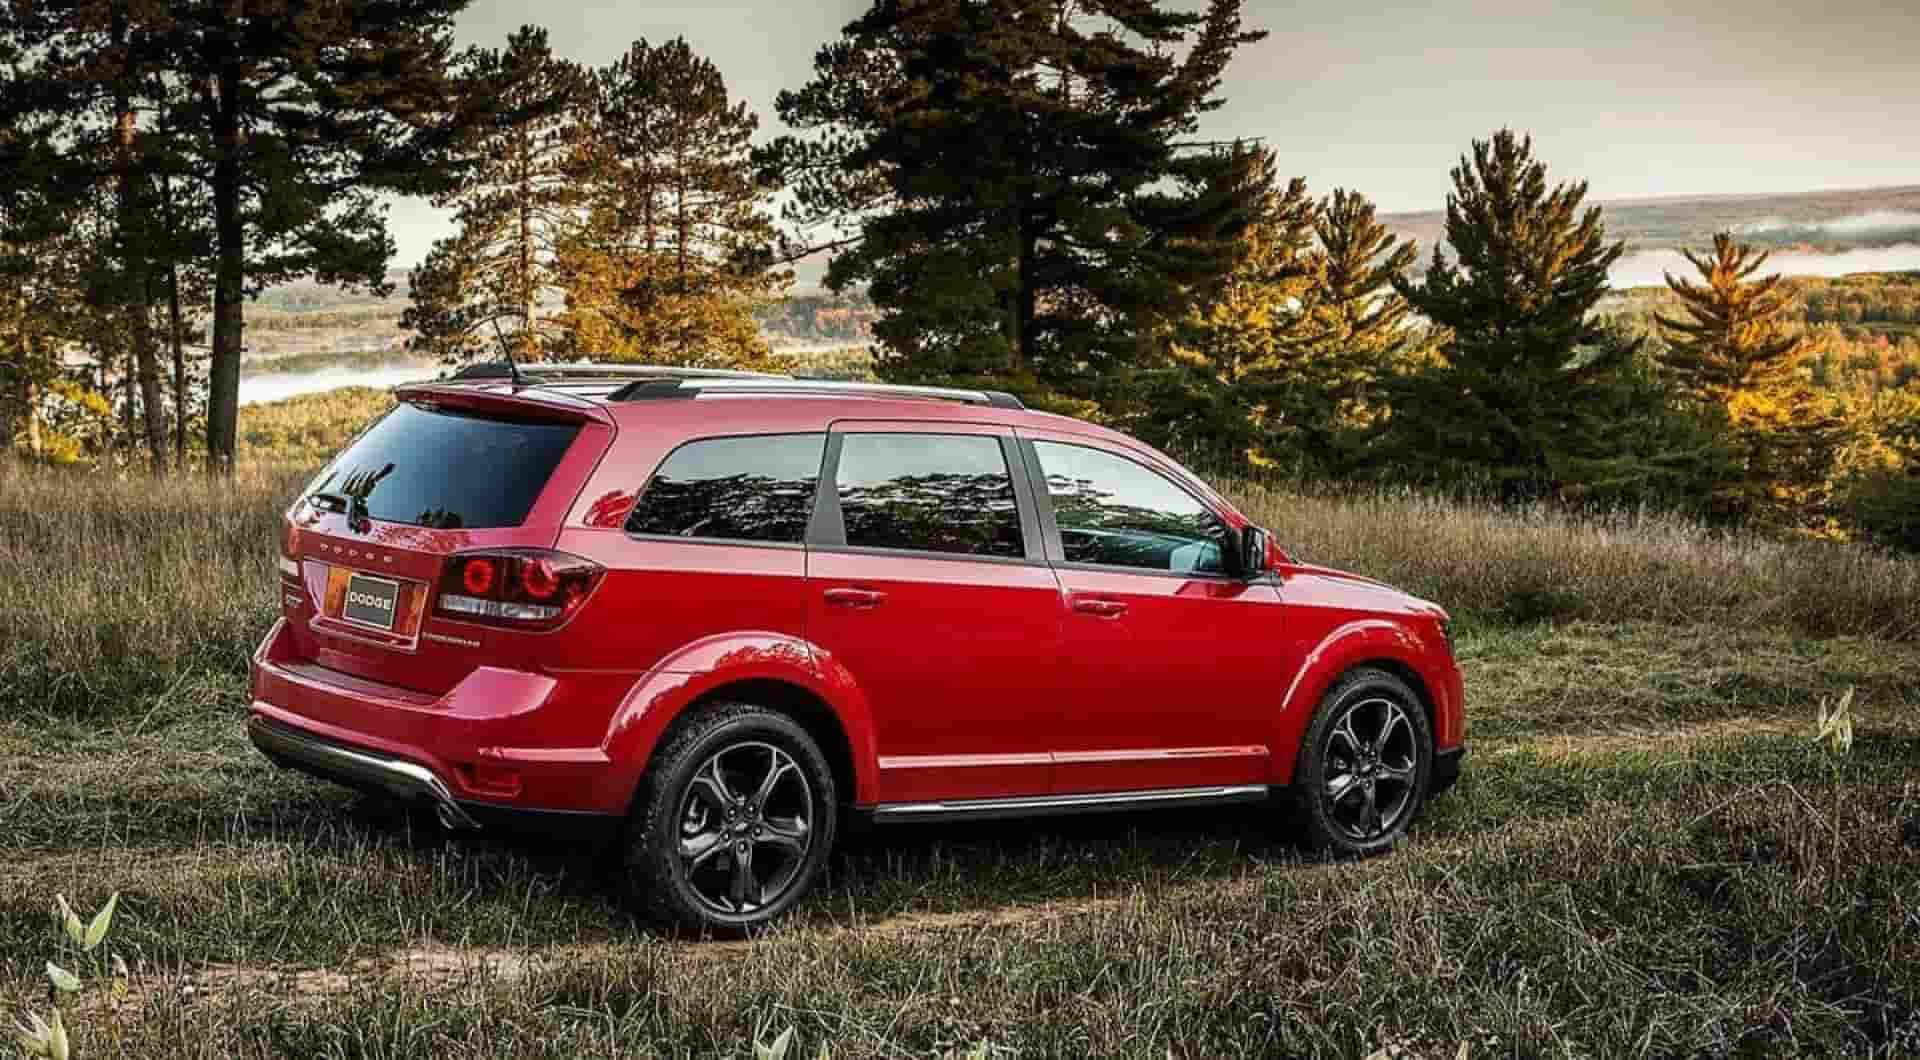 Get to Know the 2019 Dodge Journey near Santa Fe NM